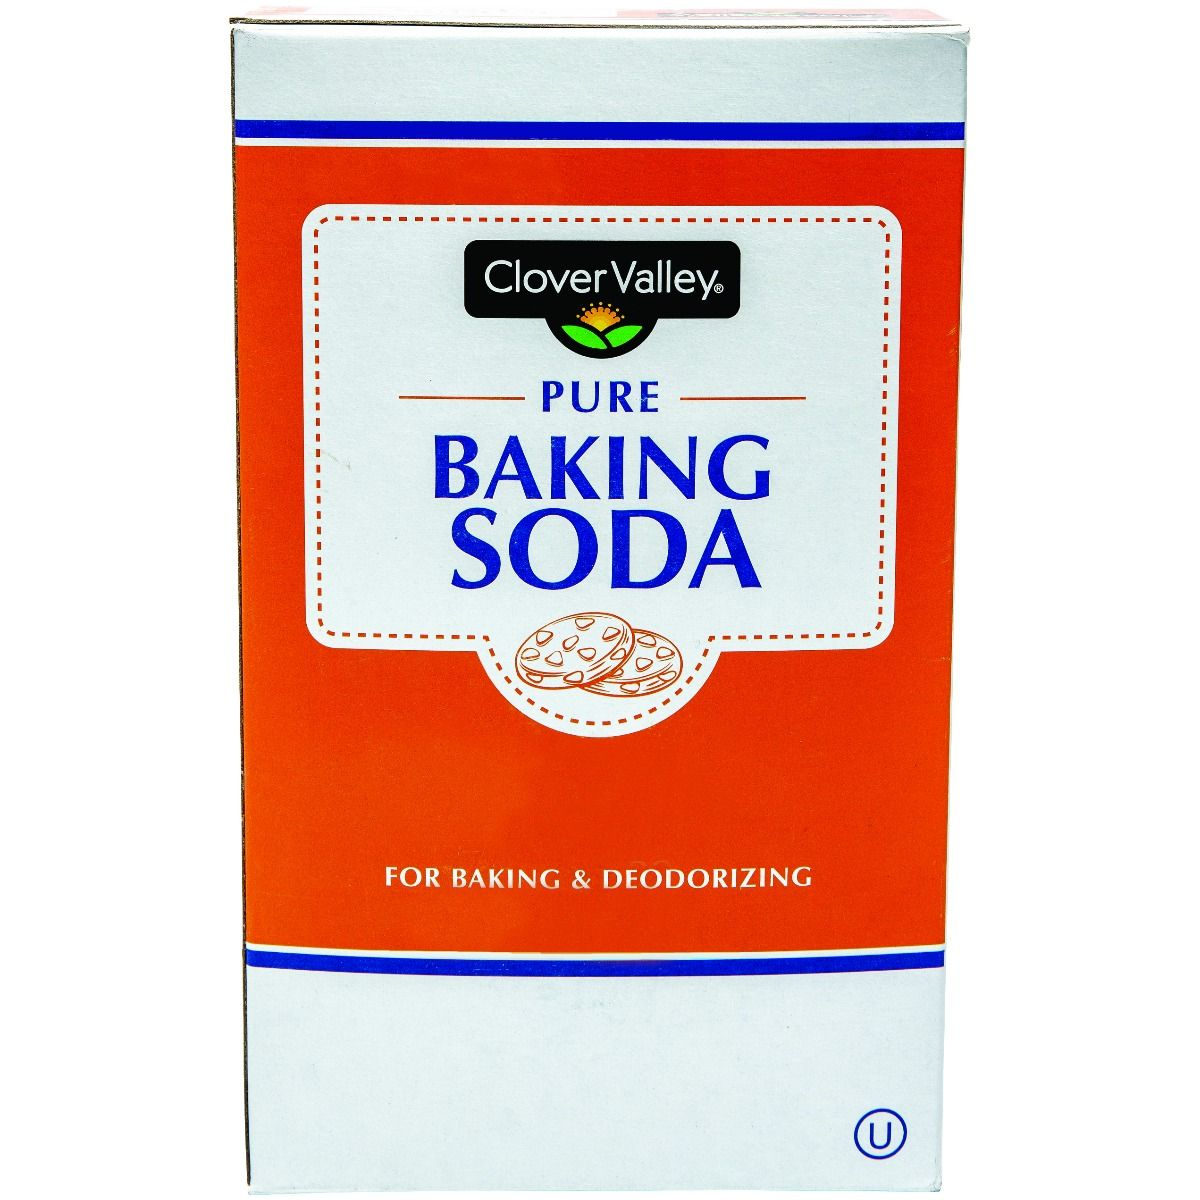 Clover Valley Baking Soda 16 oz Box